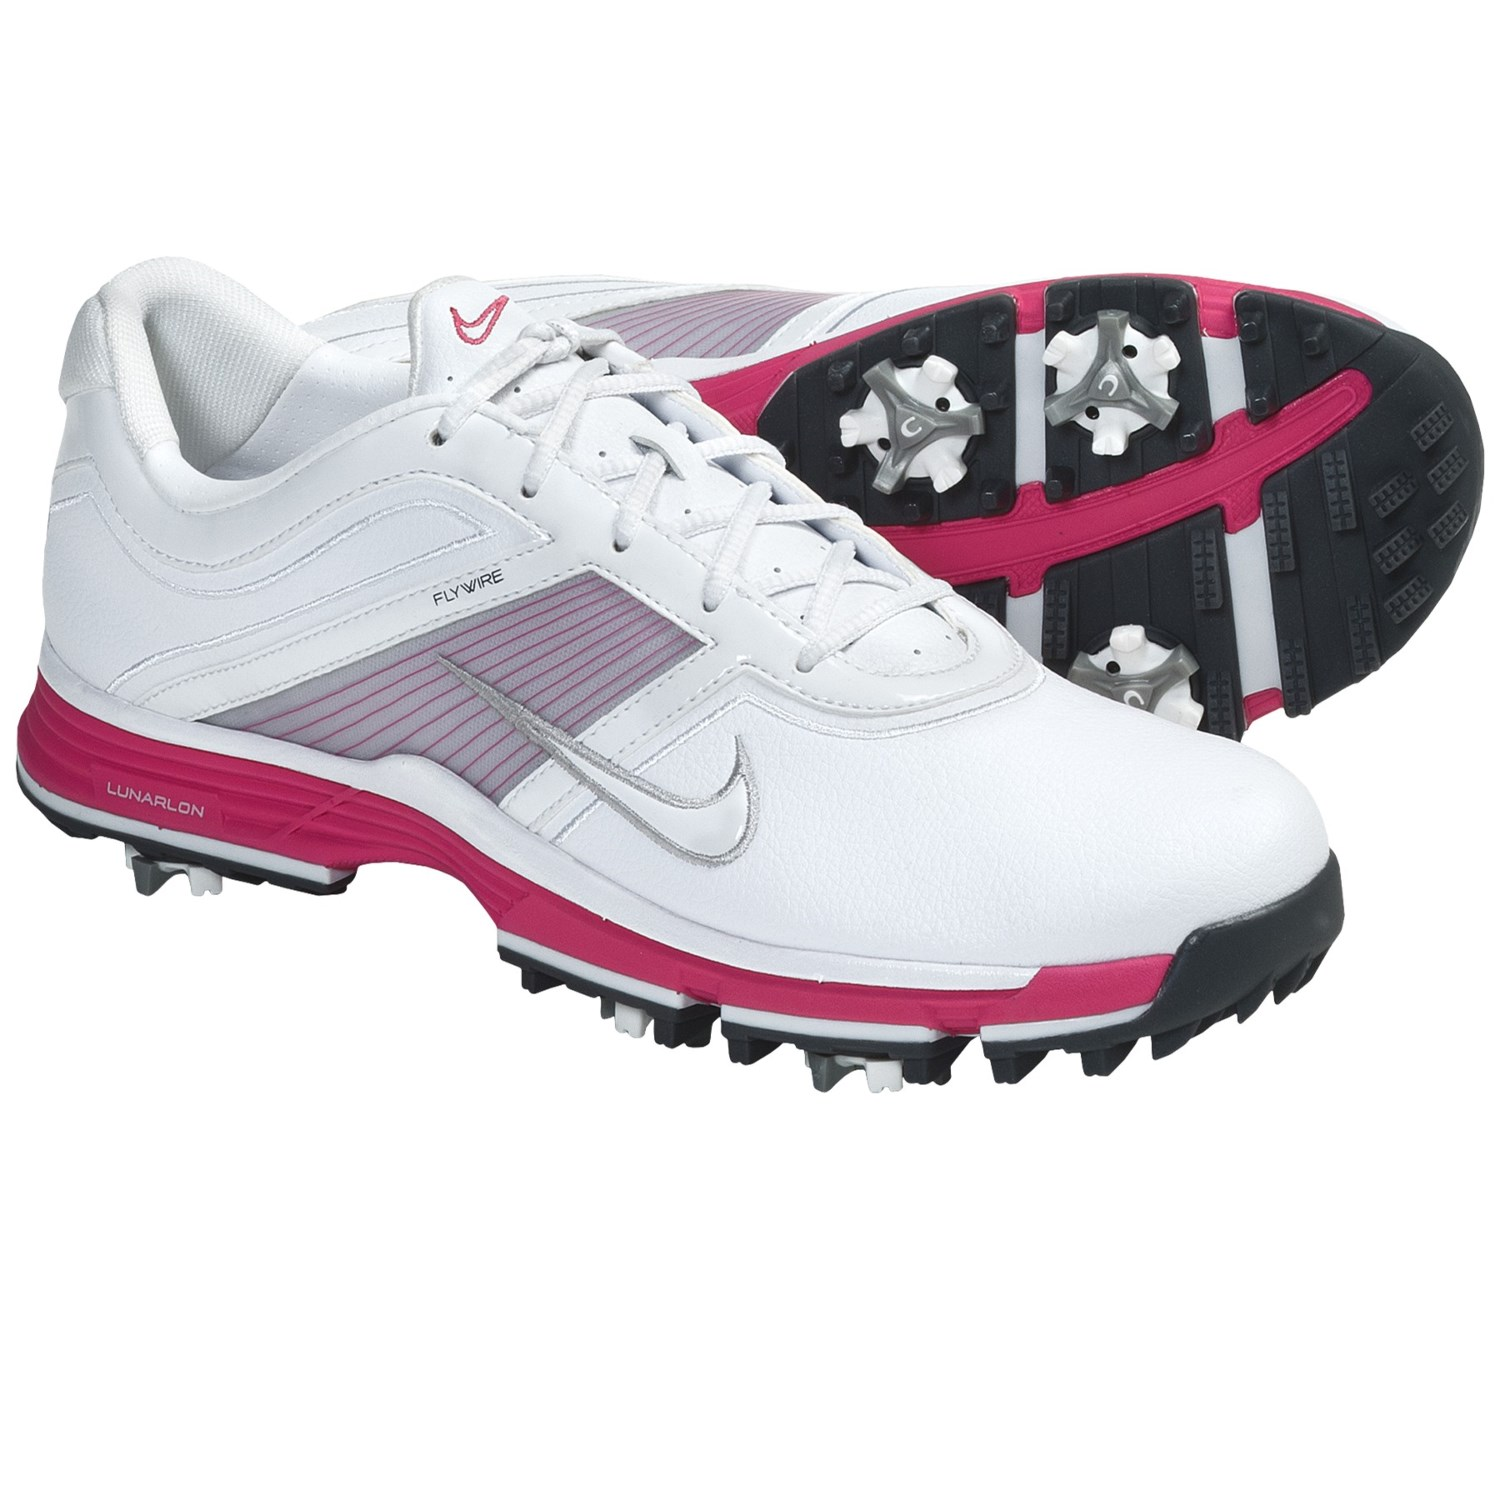 Nike Golf Nike Lunar Links Golf Shoes (For Women) in White/White